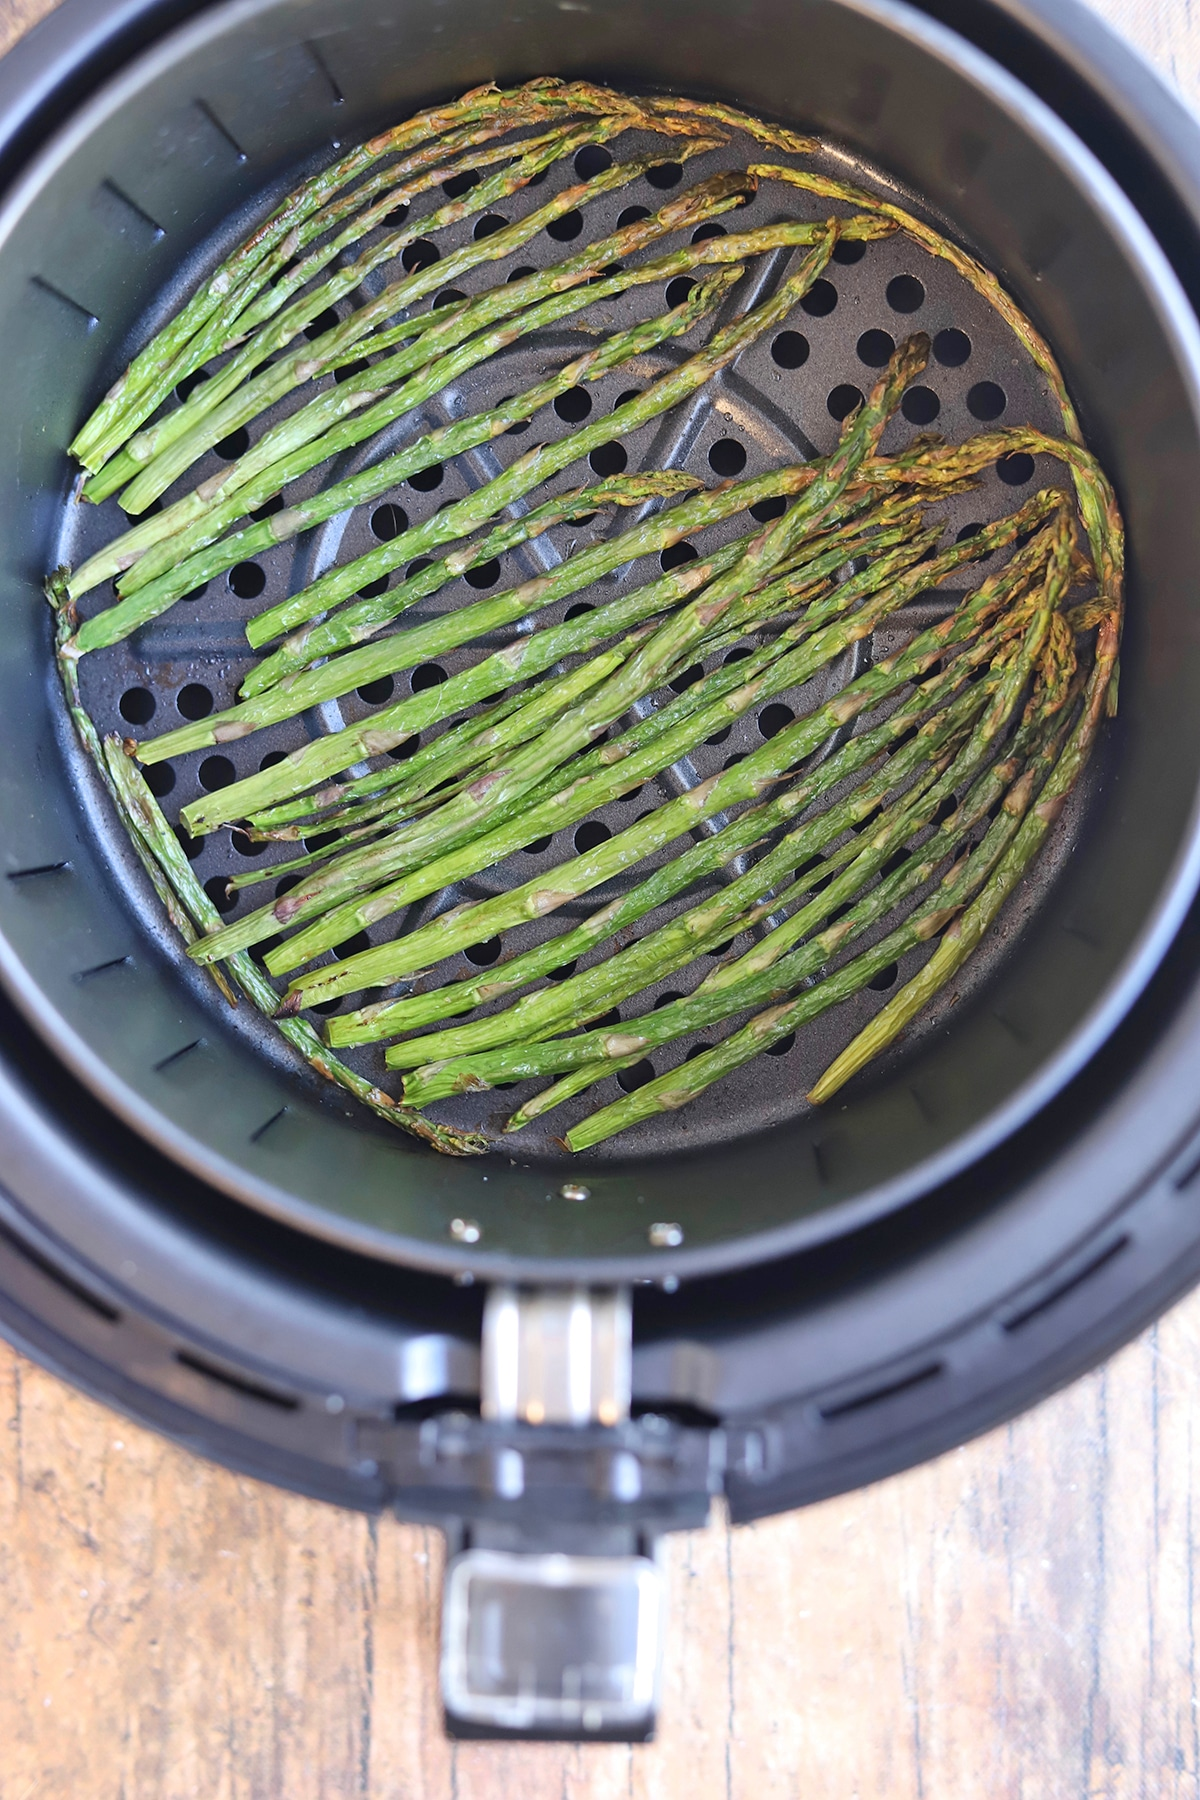 Cooked asparagus in air fryer basket.